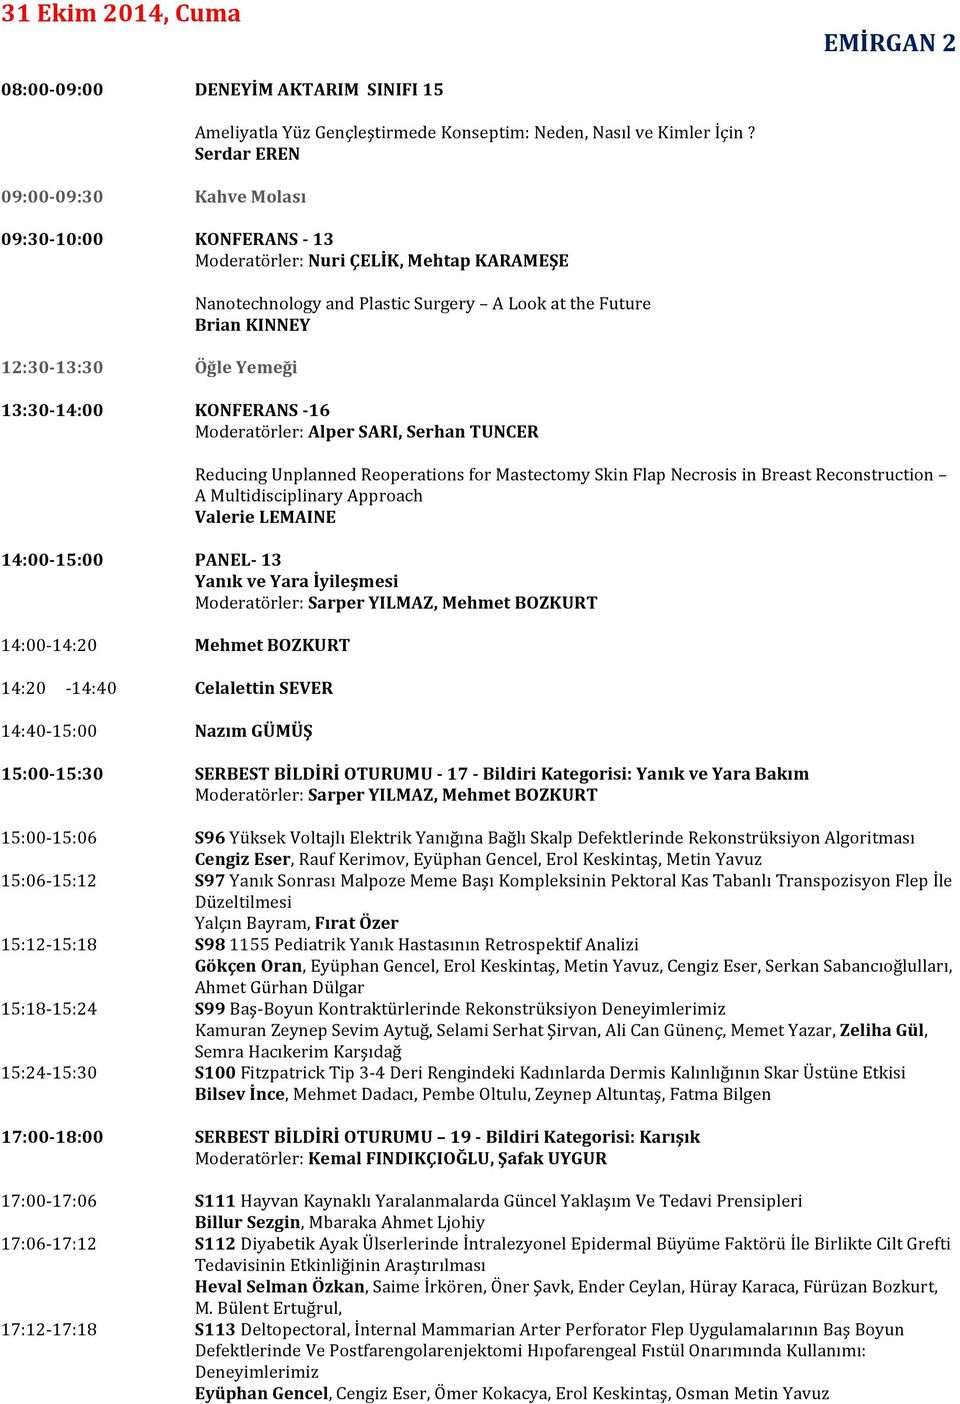 Moderatörler: Alper SARI, Serhan TUNCER Reducing Unplanned Reoperations for Mastectomy Skin Flap Necrosis in Breast Reconstruction A Multidisciplinary Approach Valerie LEMAINE 14:00-15:00 14:00-14:20